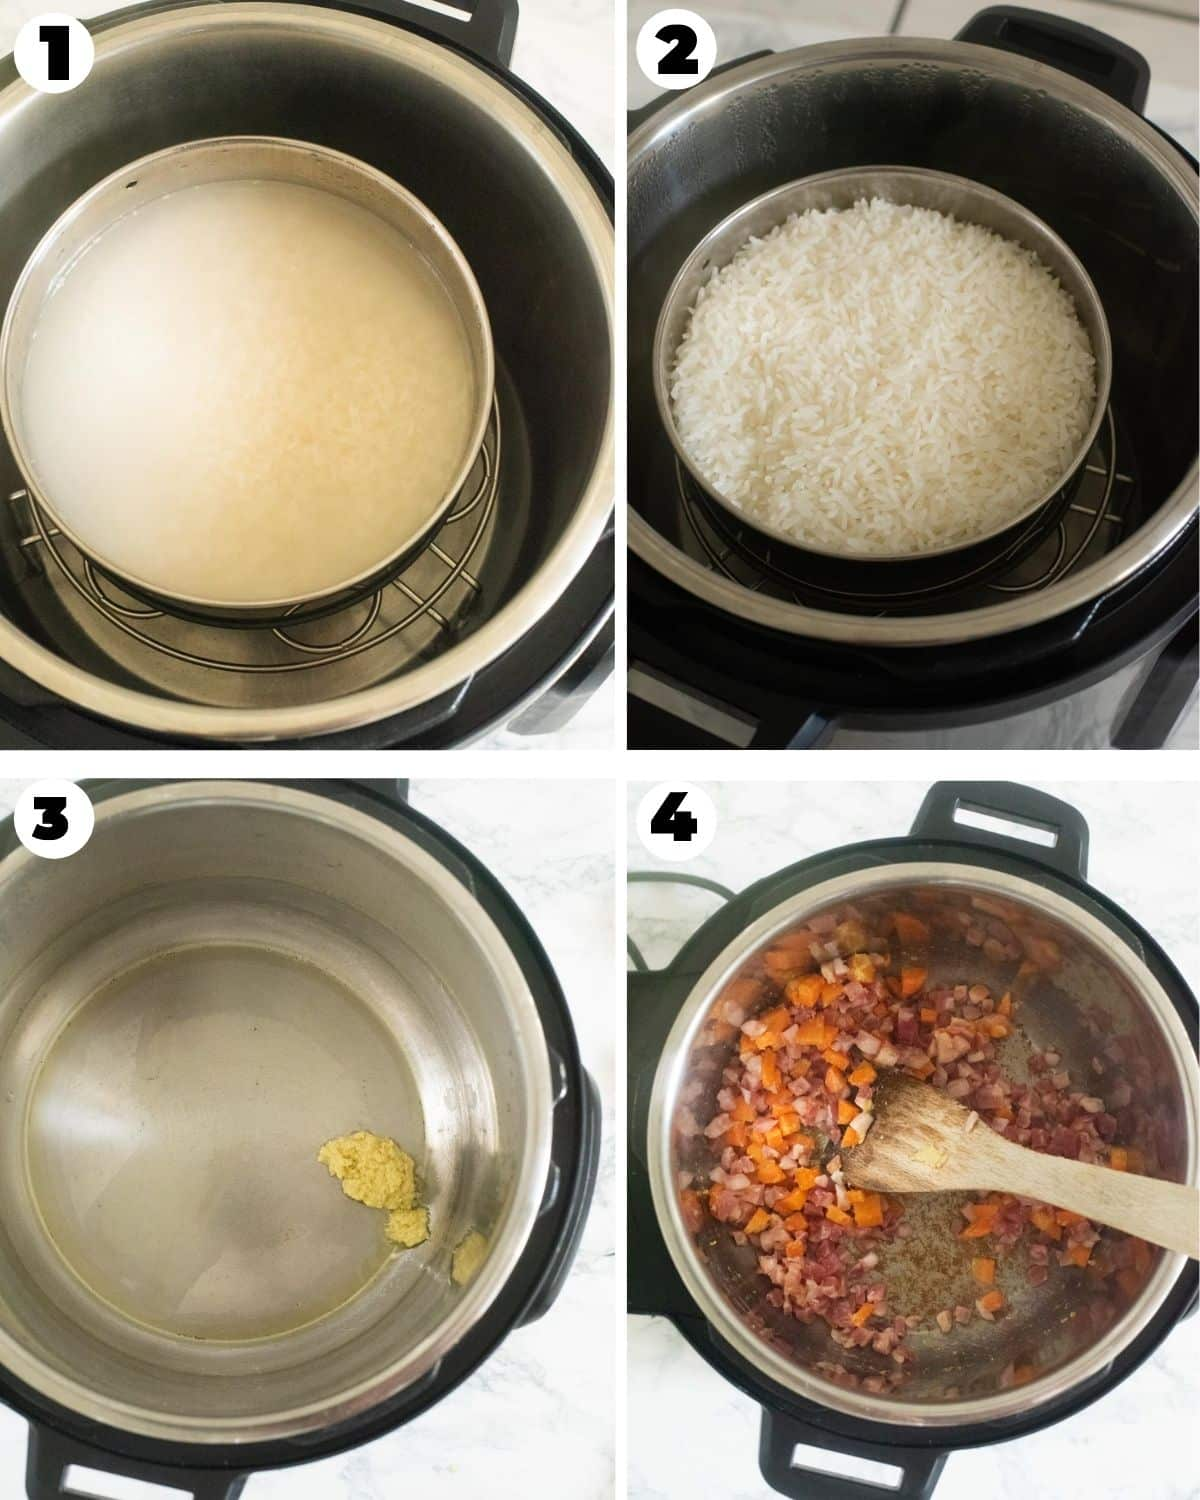 Steps showing cooking Jasmine rice in the Instant Pot, and sauteeing fried rice add-ins